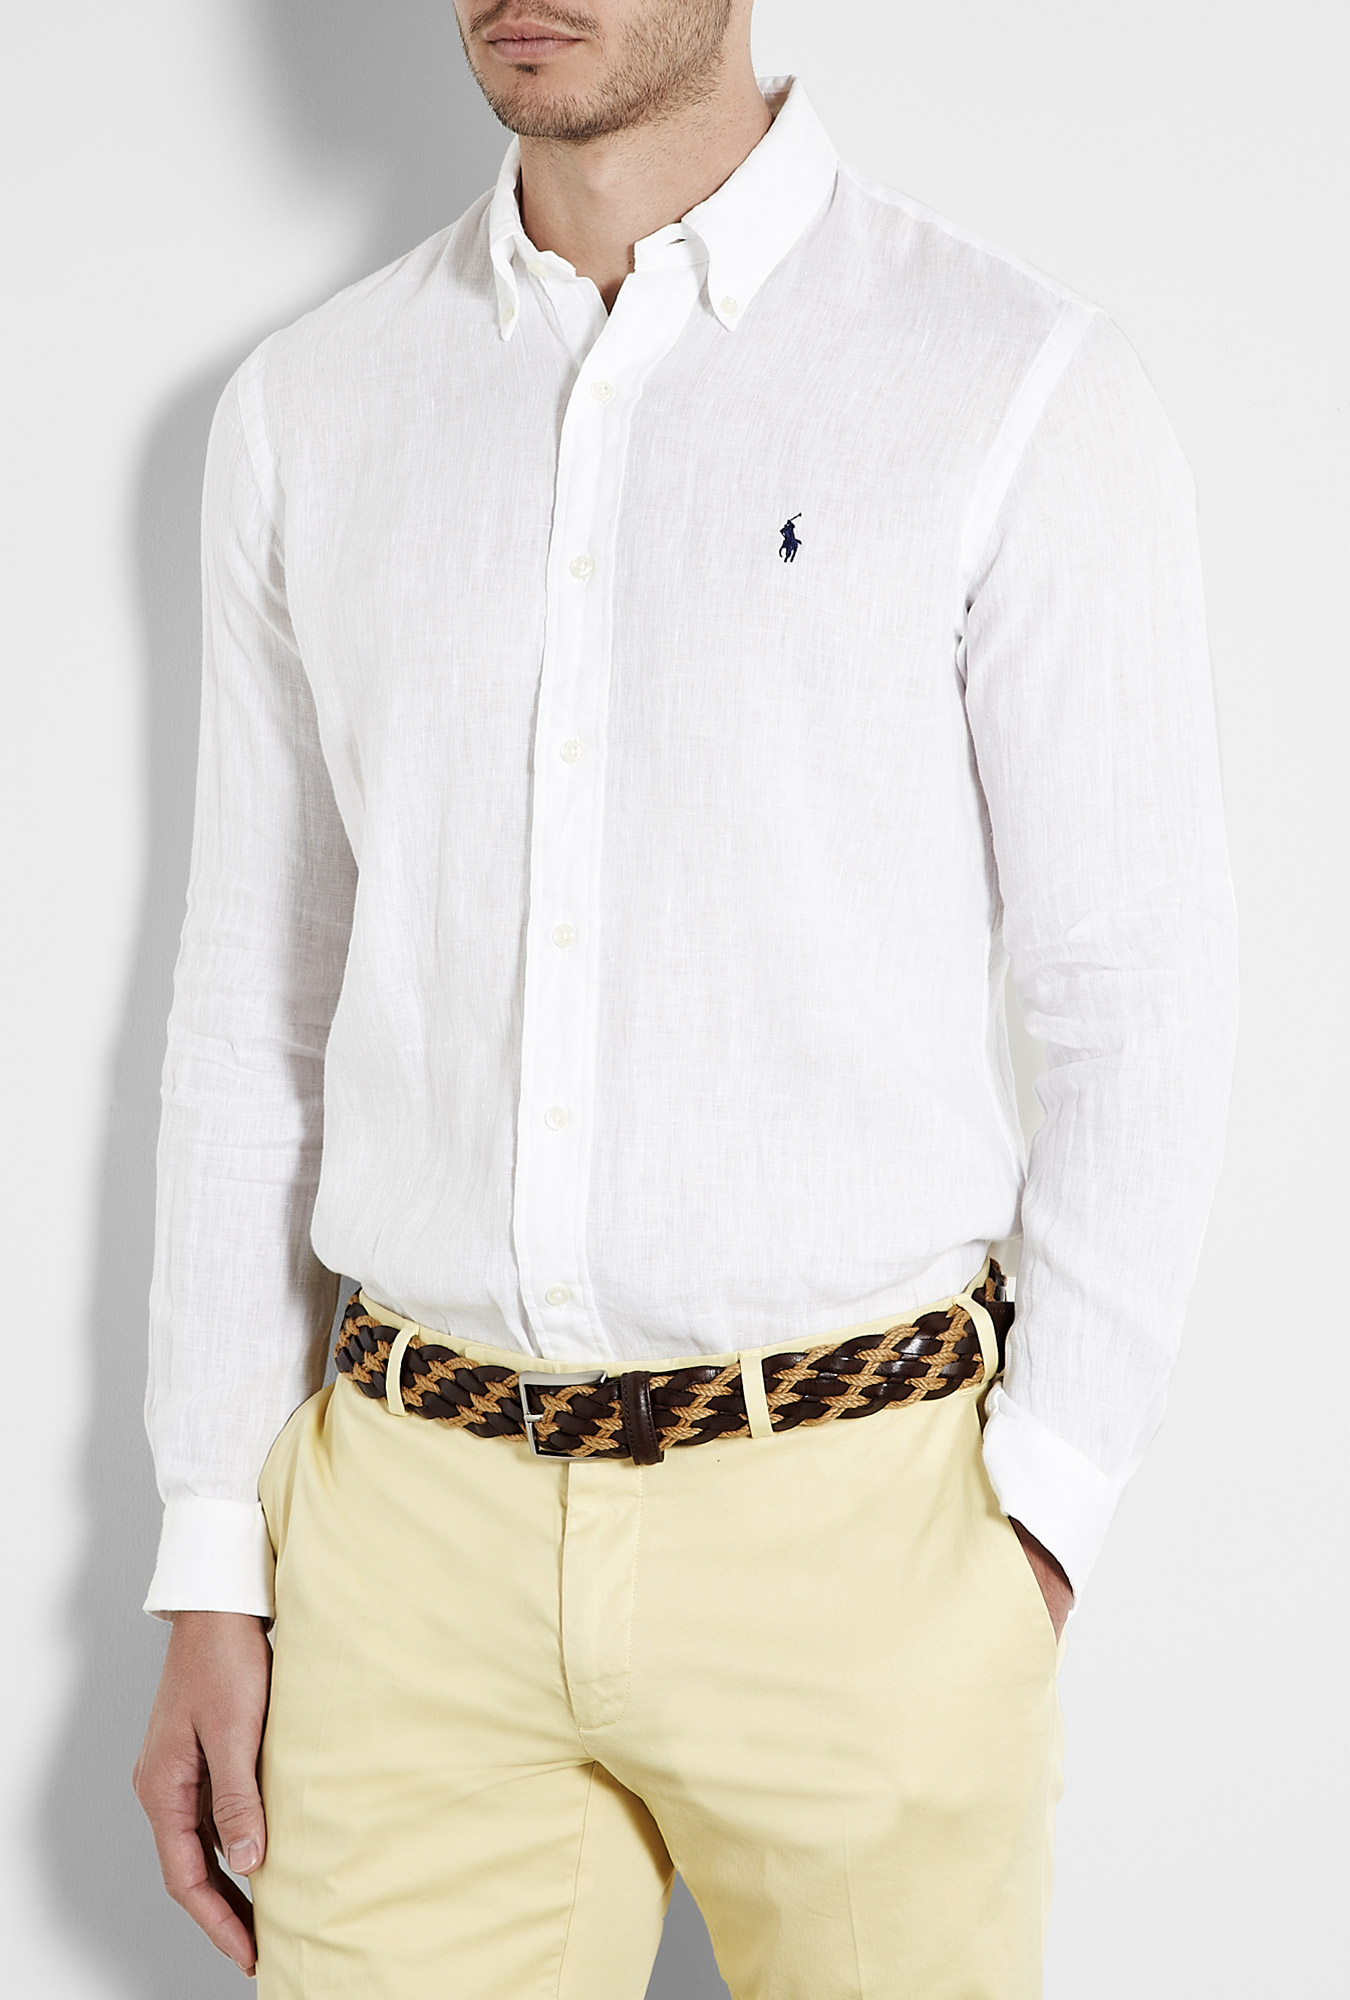 Polo ralph lauren white linen custom fit shirt in white for Custom suits and shirts